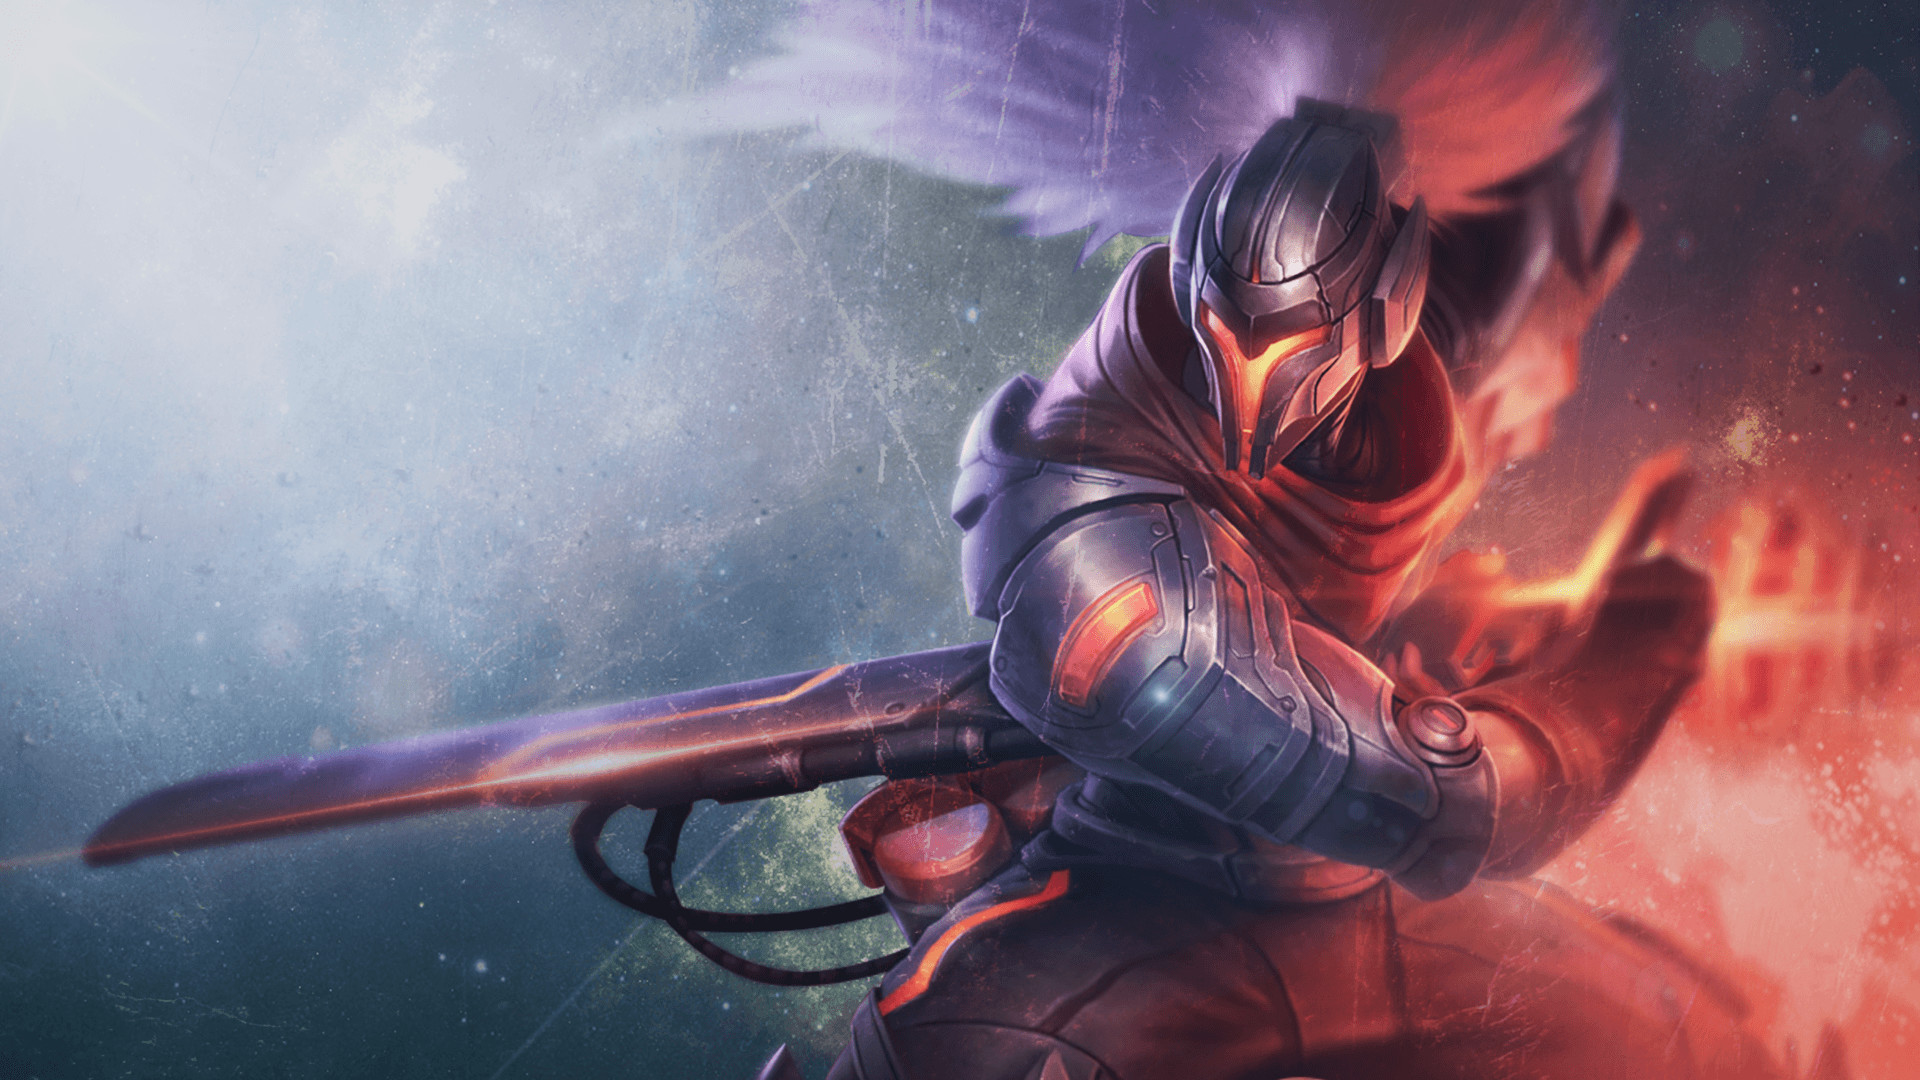 Project Yasuo Wallpaper HD, Images Collection of Project Yasuo HD .